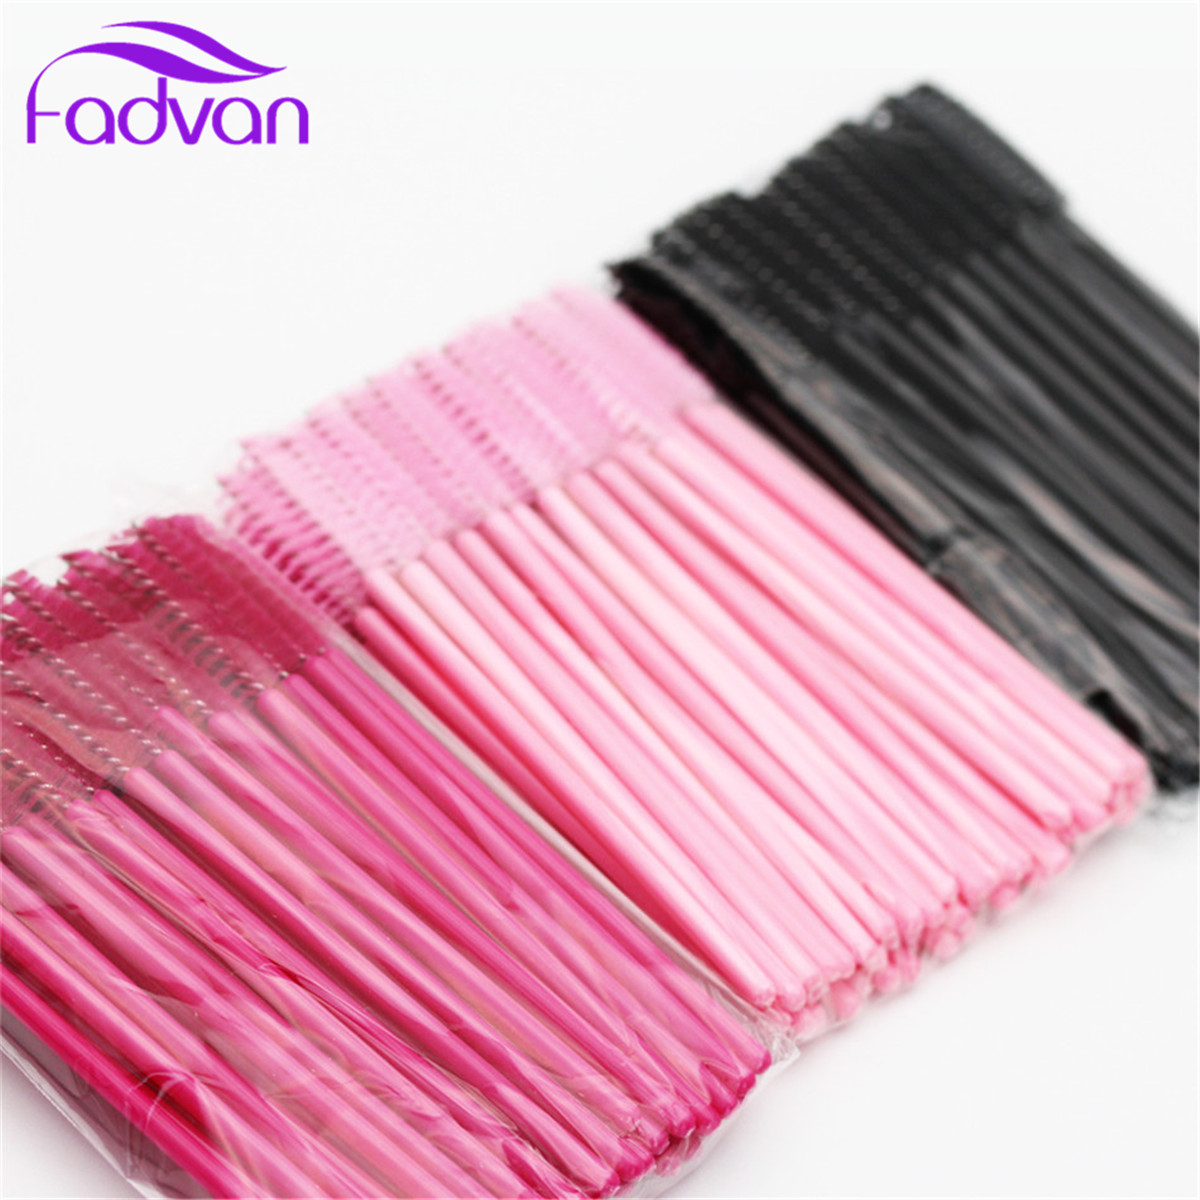 New 100 Pcs/Set Disposable Eyelash Brush Mascara Wands Applicator Spoolers Eye Lashes Eyebrow Brush Eyelash Brush Long Six Color комплект из 3 пар носков с блестящим рисунком